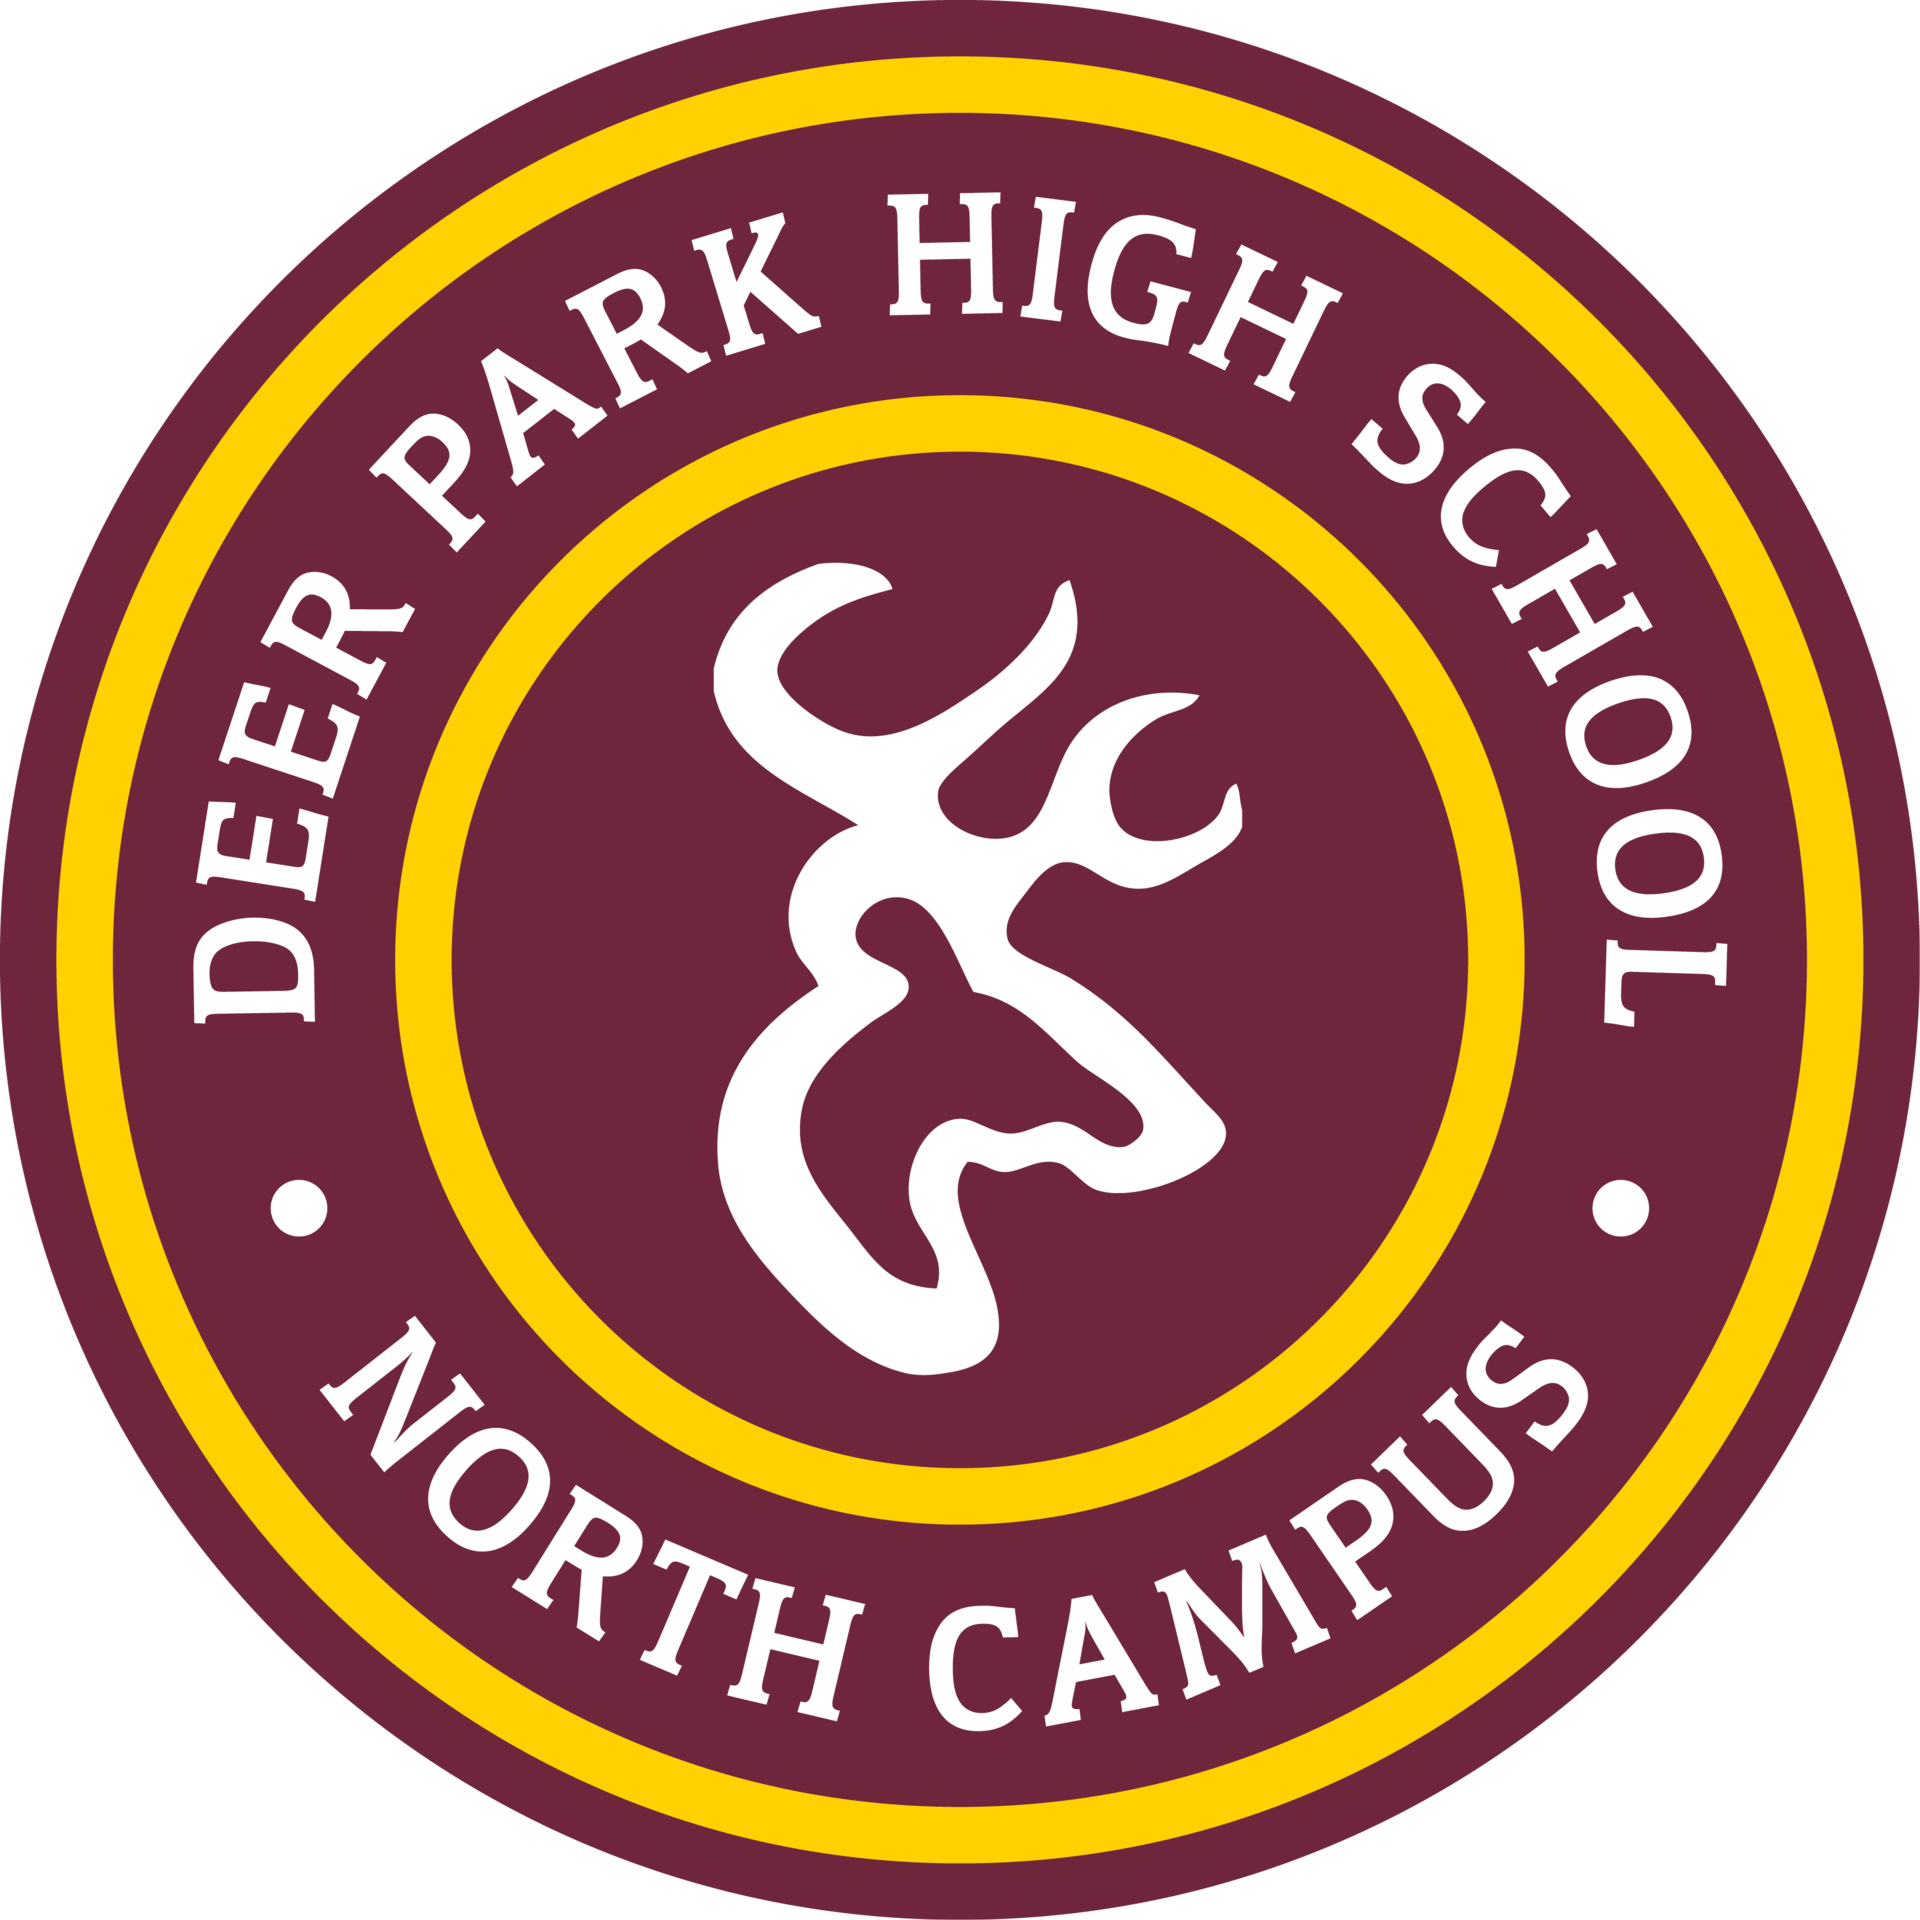 North Campus logo